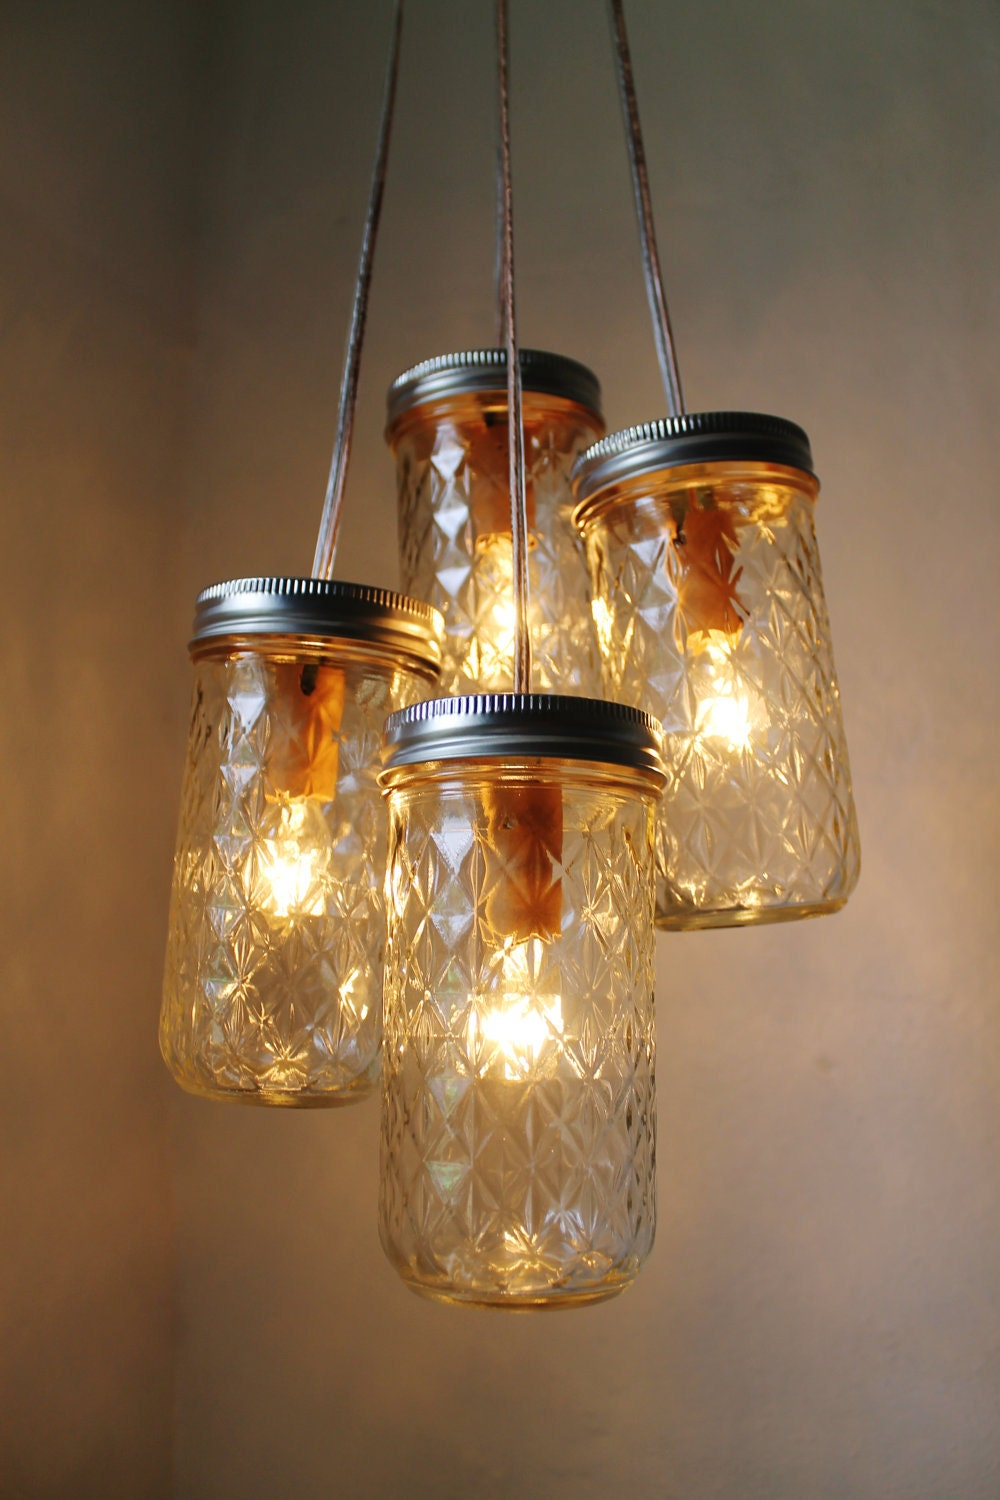 firefly dance mason jar chandelier 4 quilted pint jars. Black Bedroom Furniture Sets. Home Design Ideas